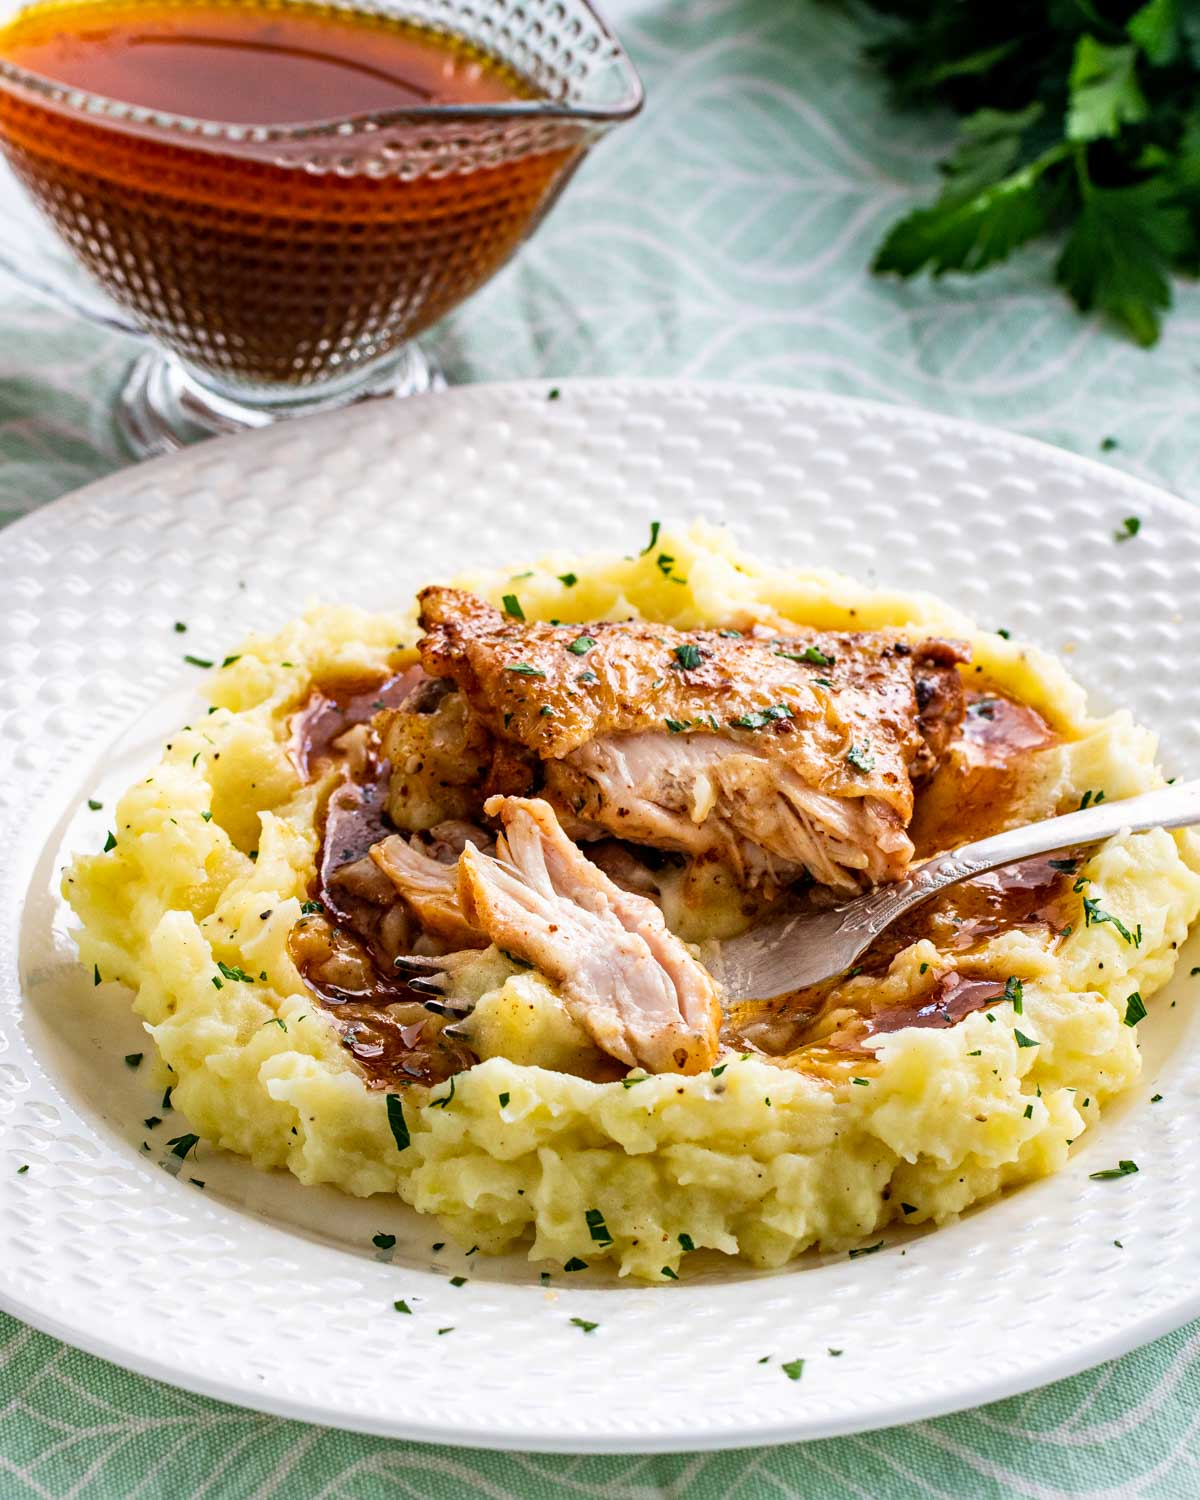 chicken thigh with gravy on a bed of mashed potatoes.